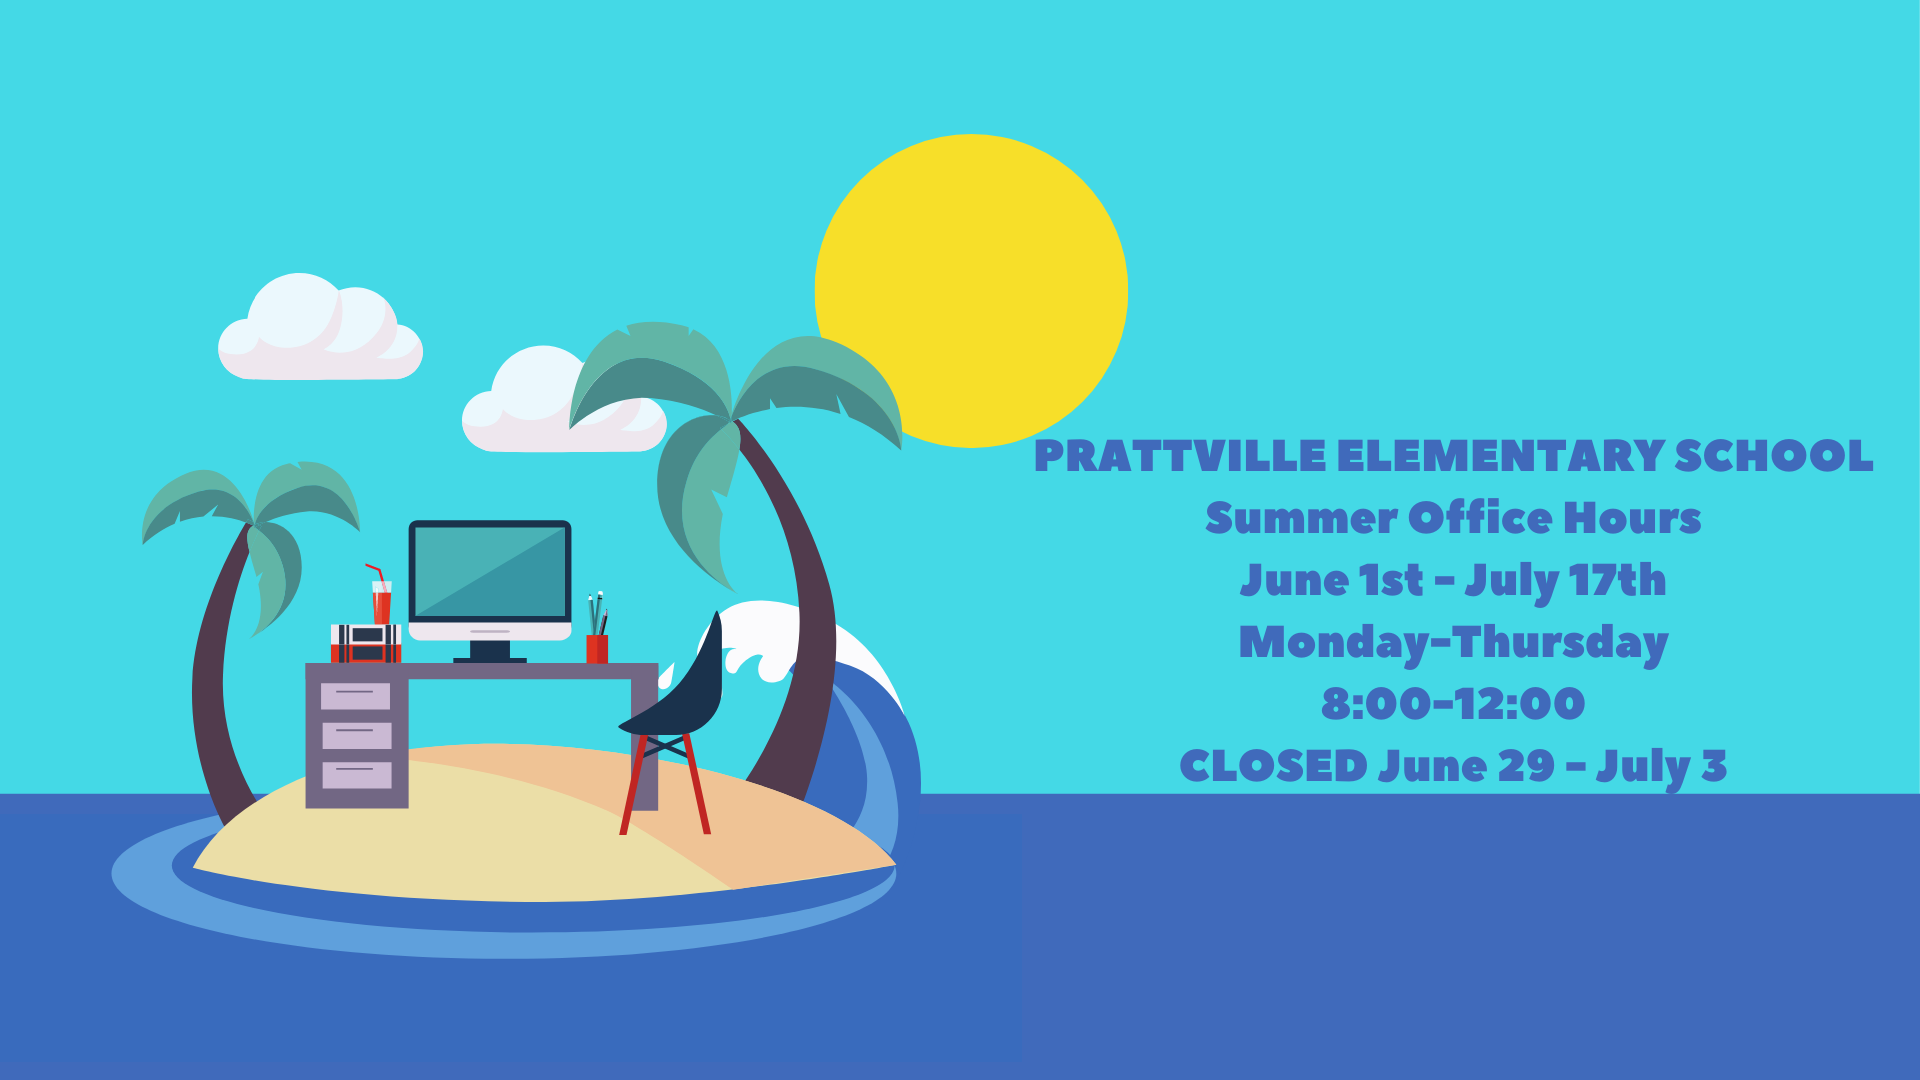 Summer Hours 8-12, Monday-Thursday, starting June 1.